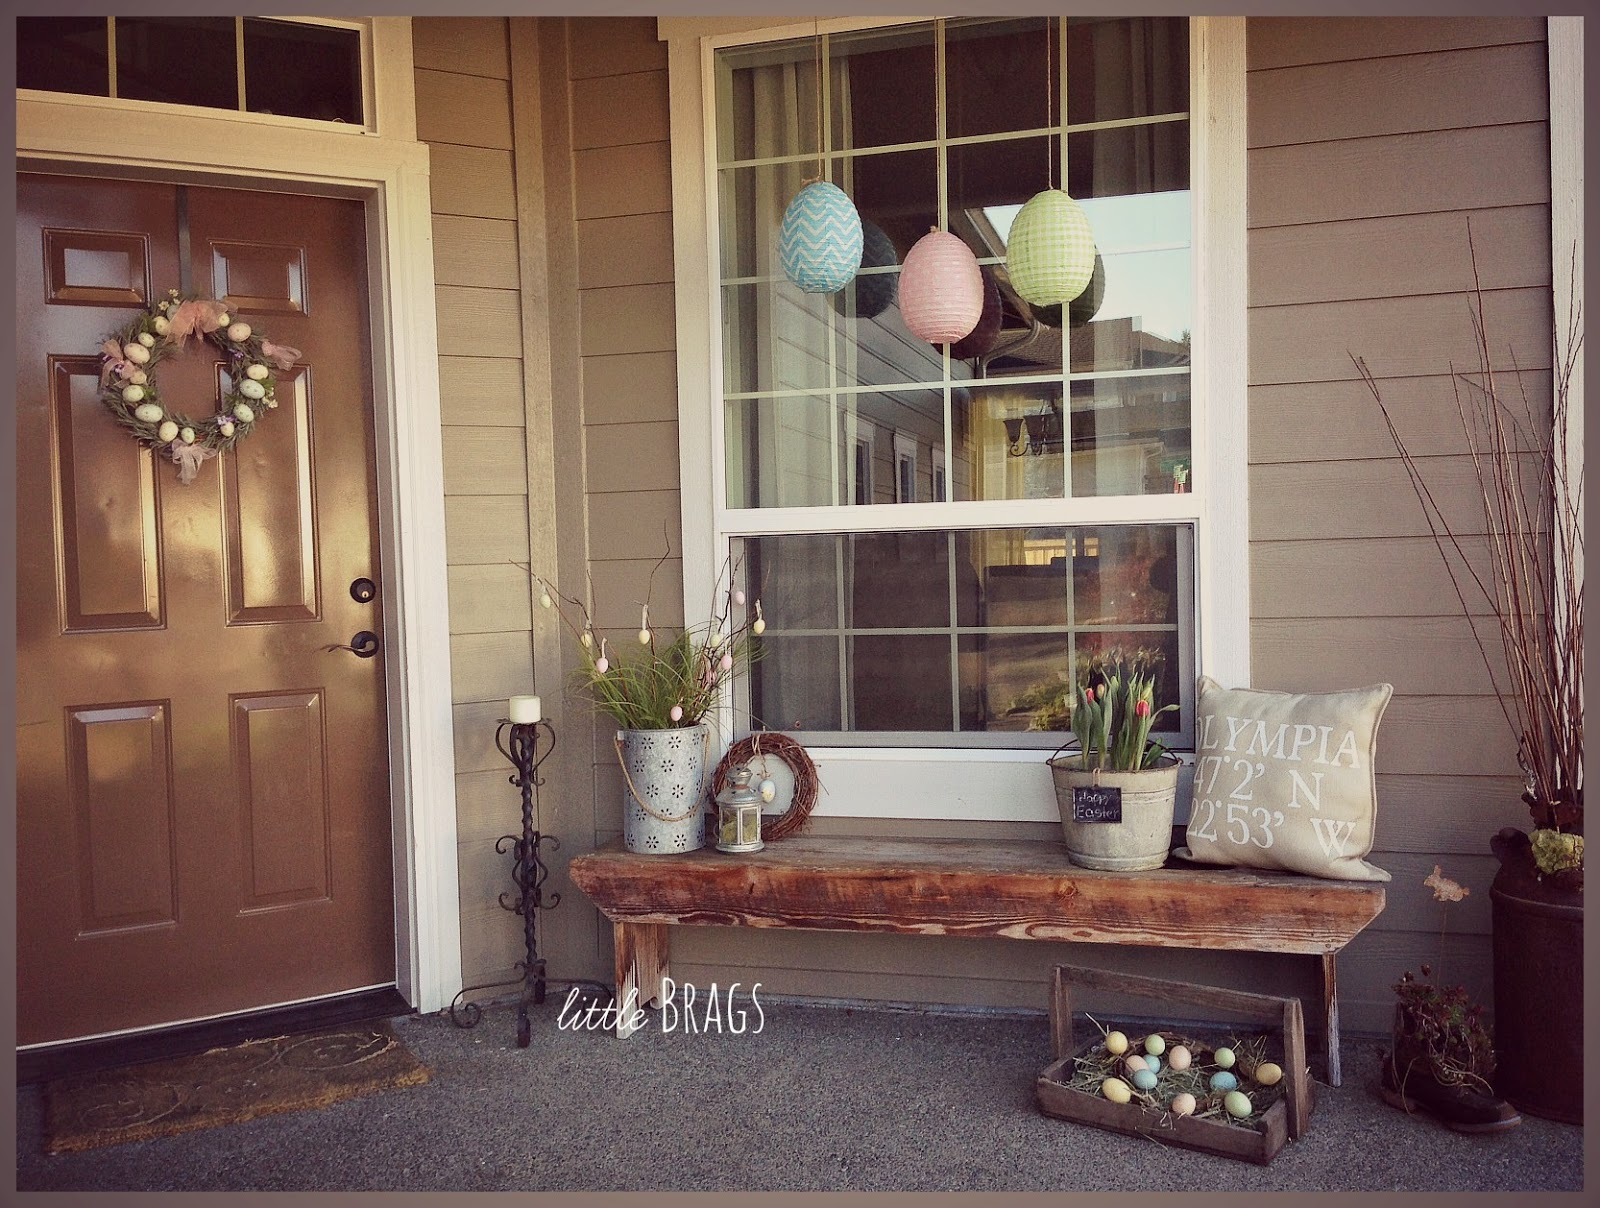 A little Easter Decorating On The Front Porch